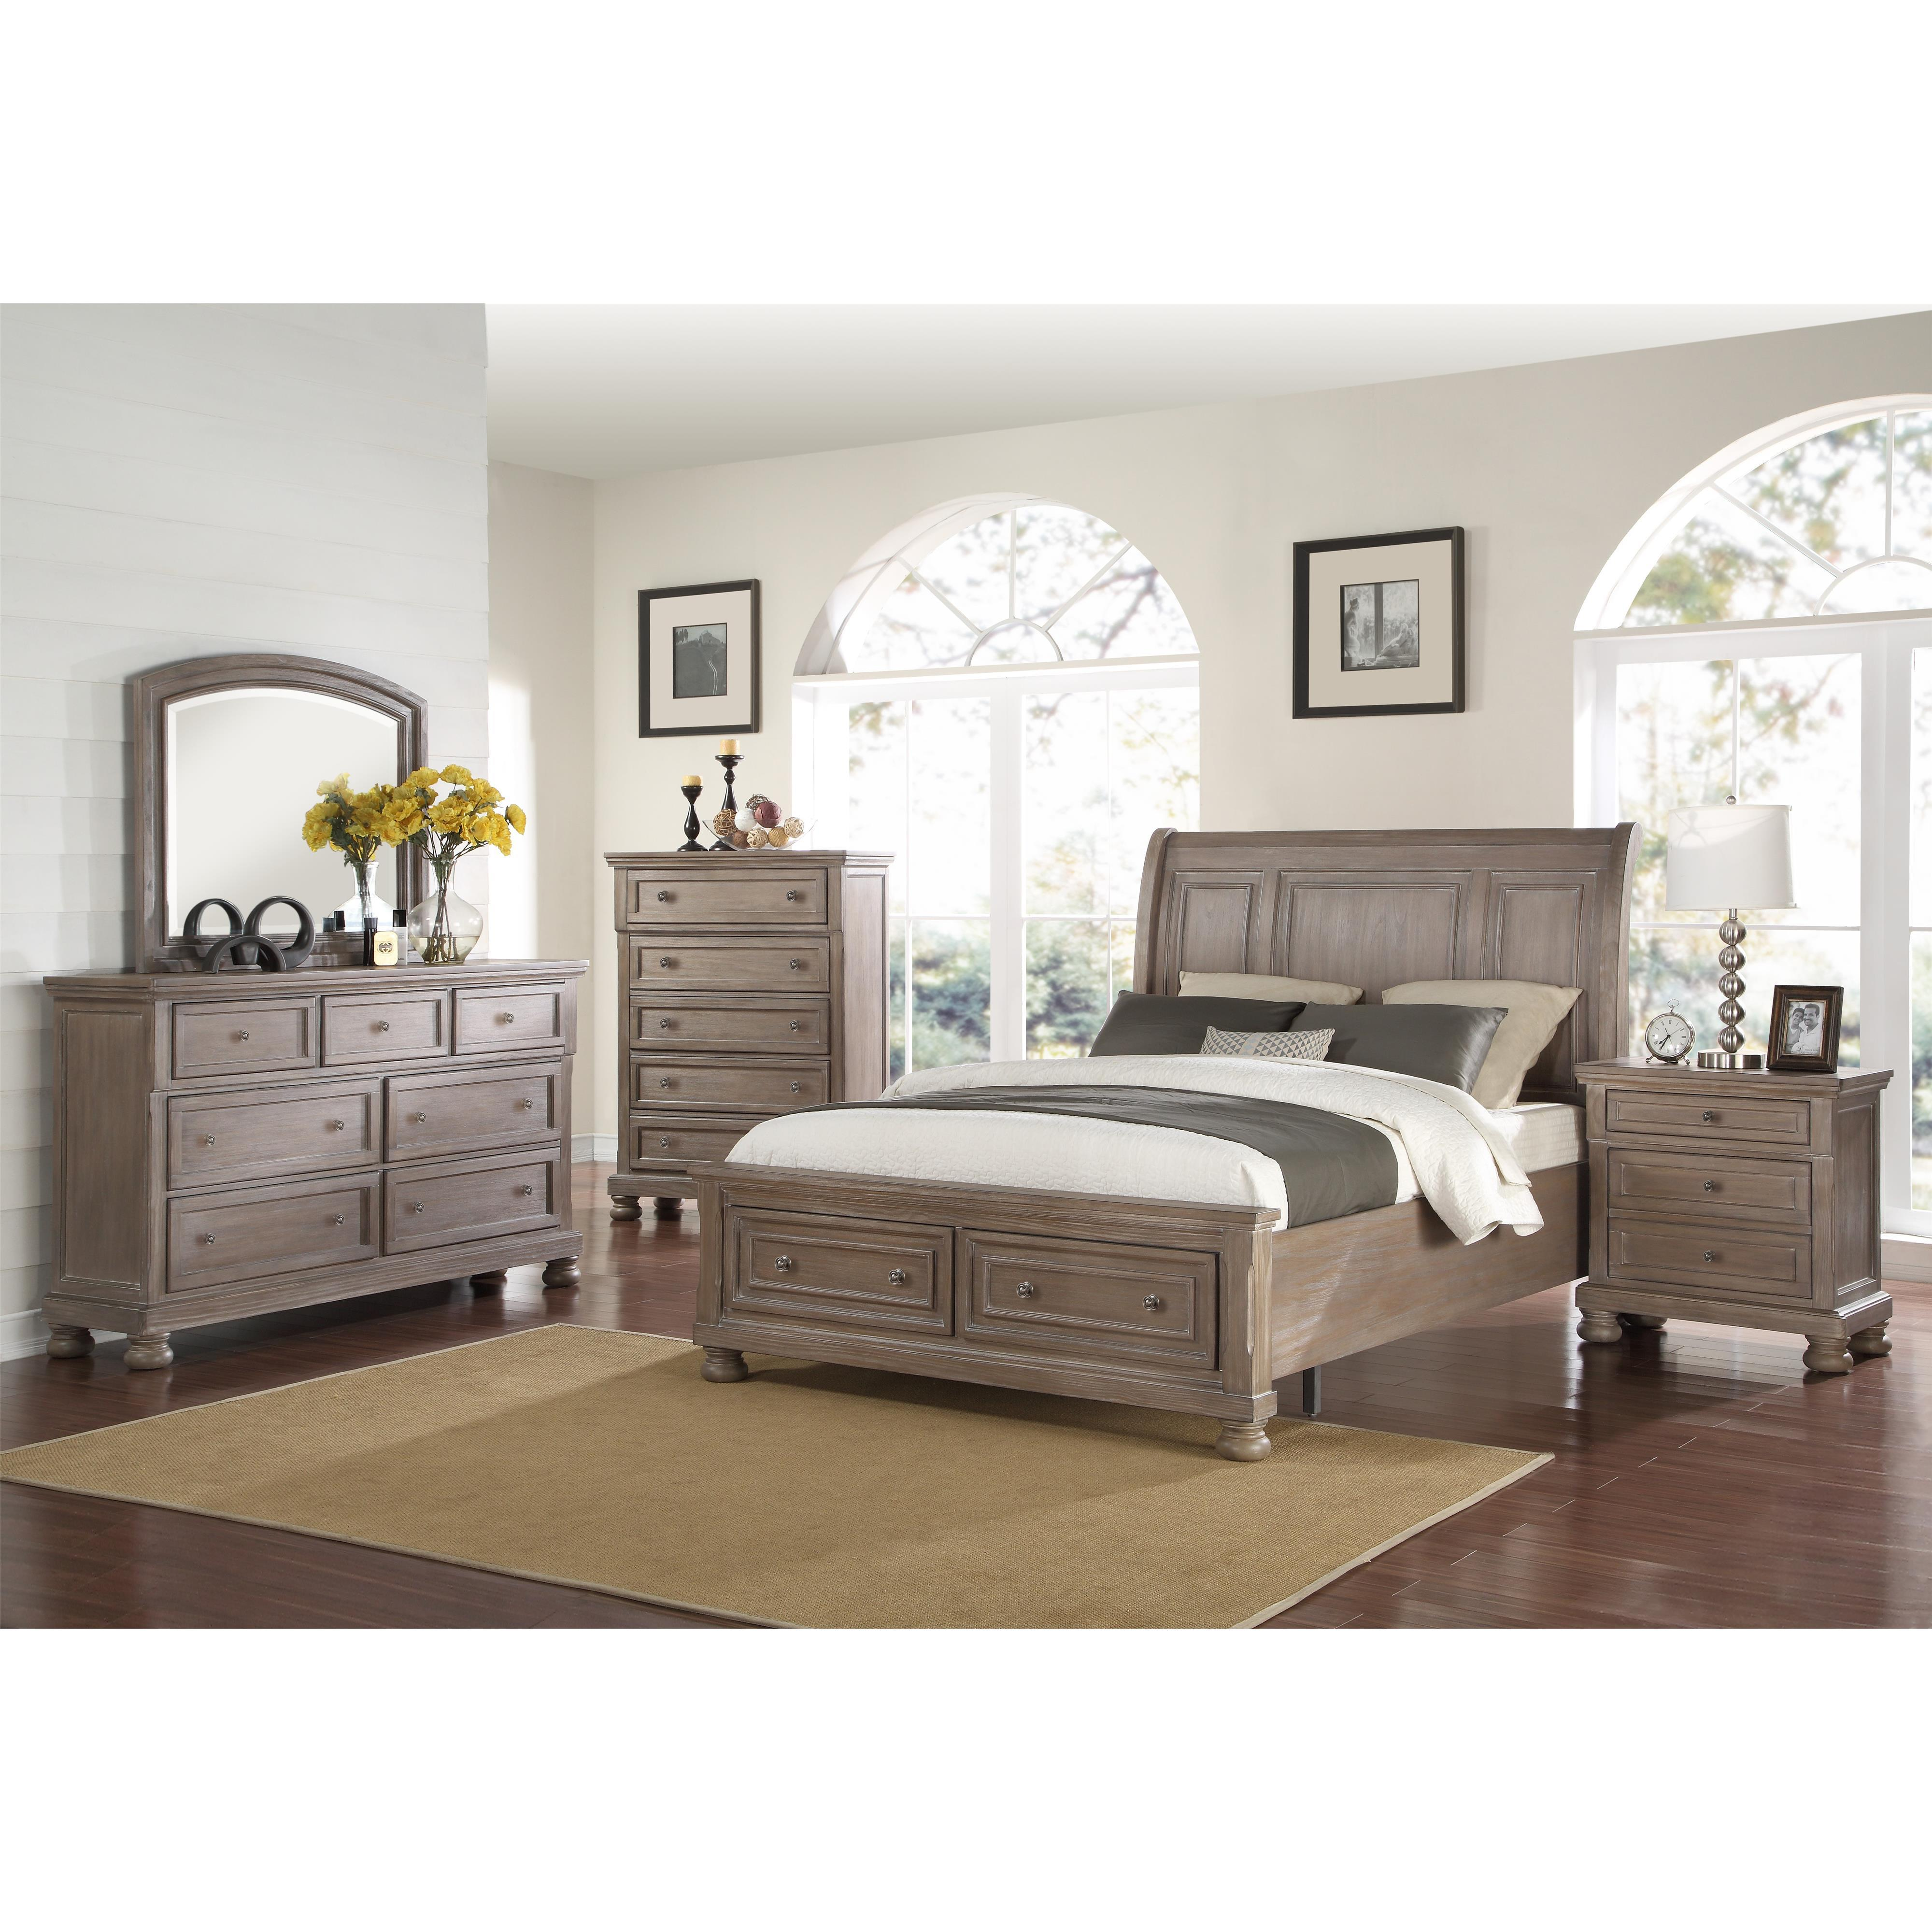 Allegra Queen Bedroom Group by New Classic at Rife's Home Furniture